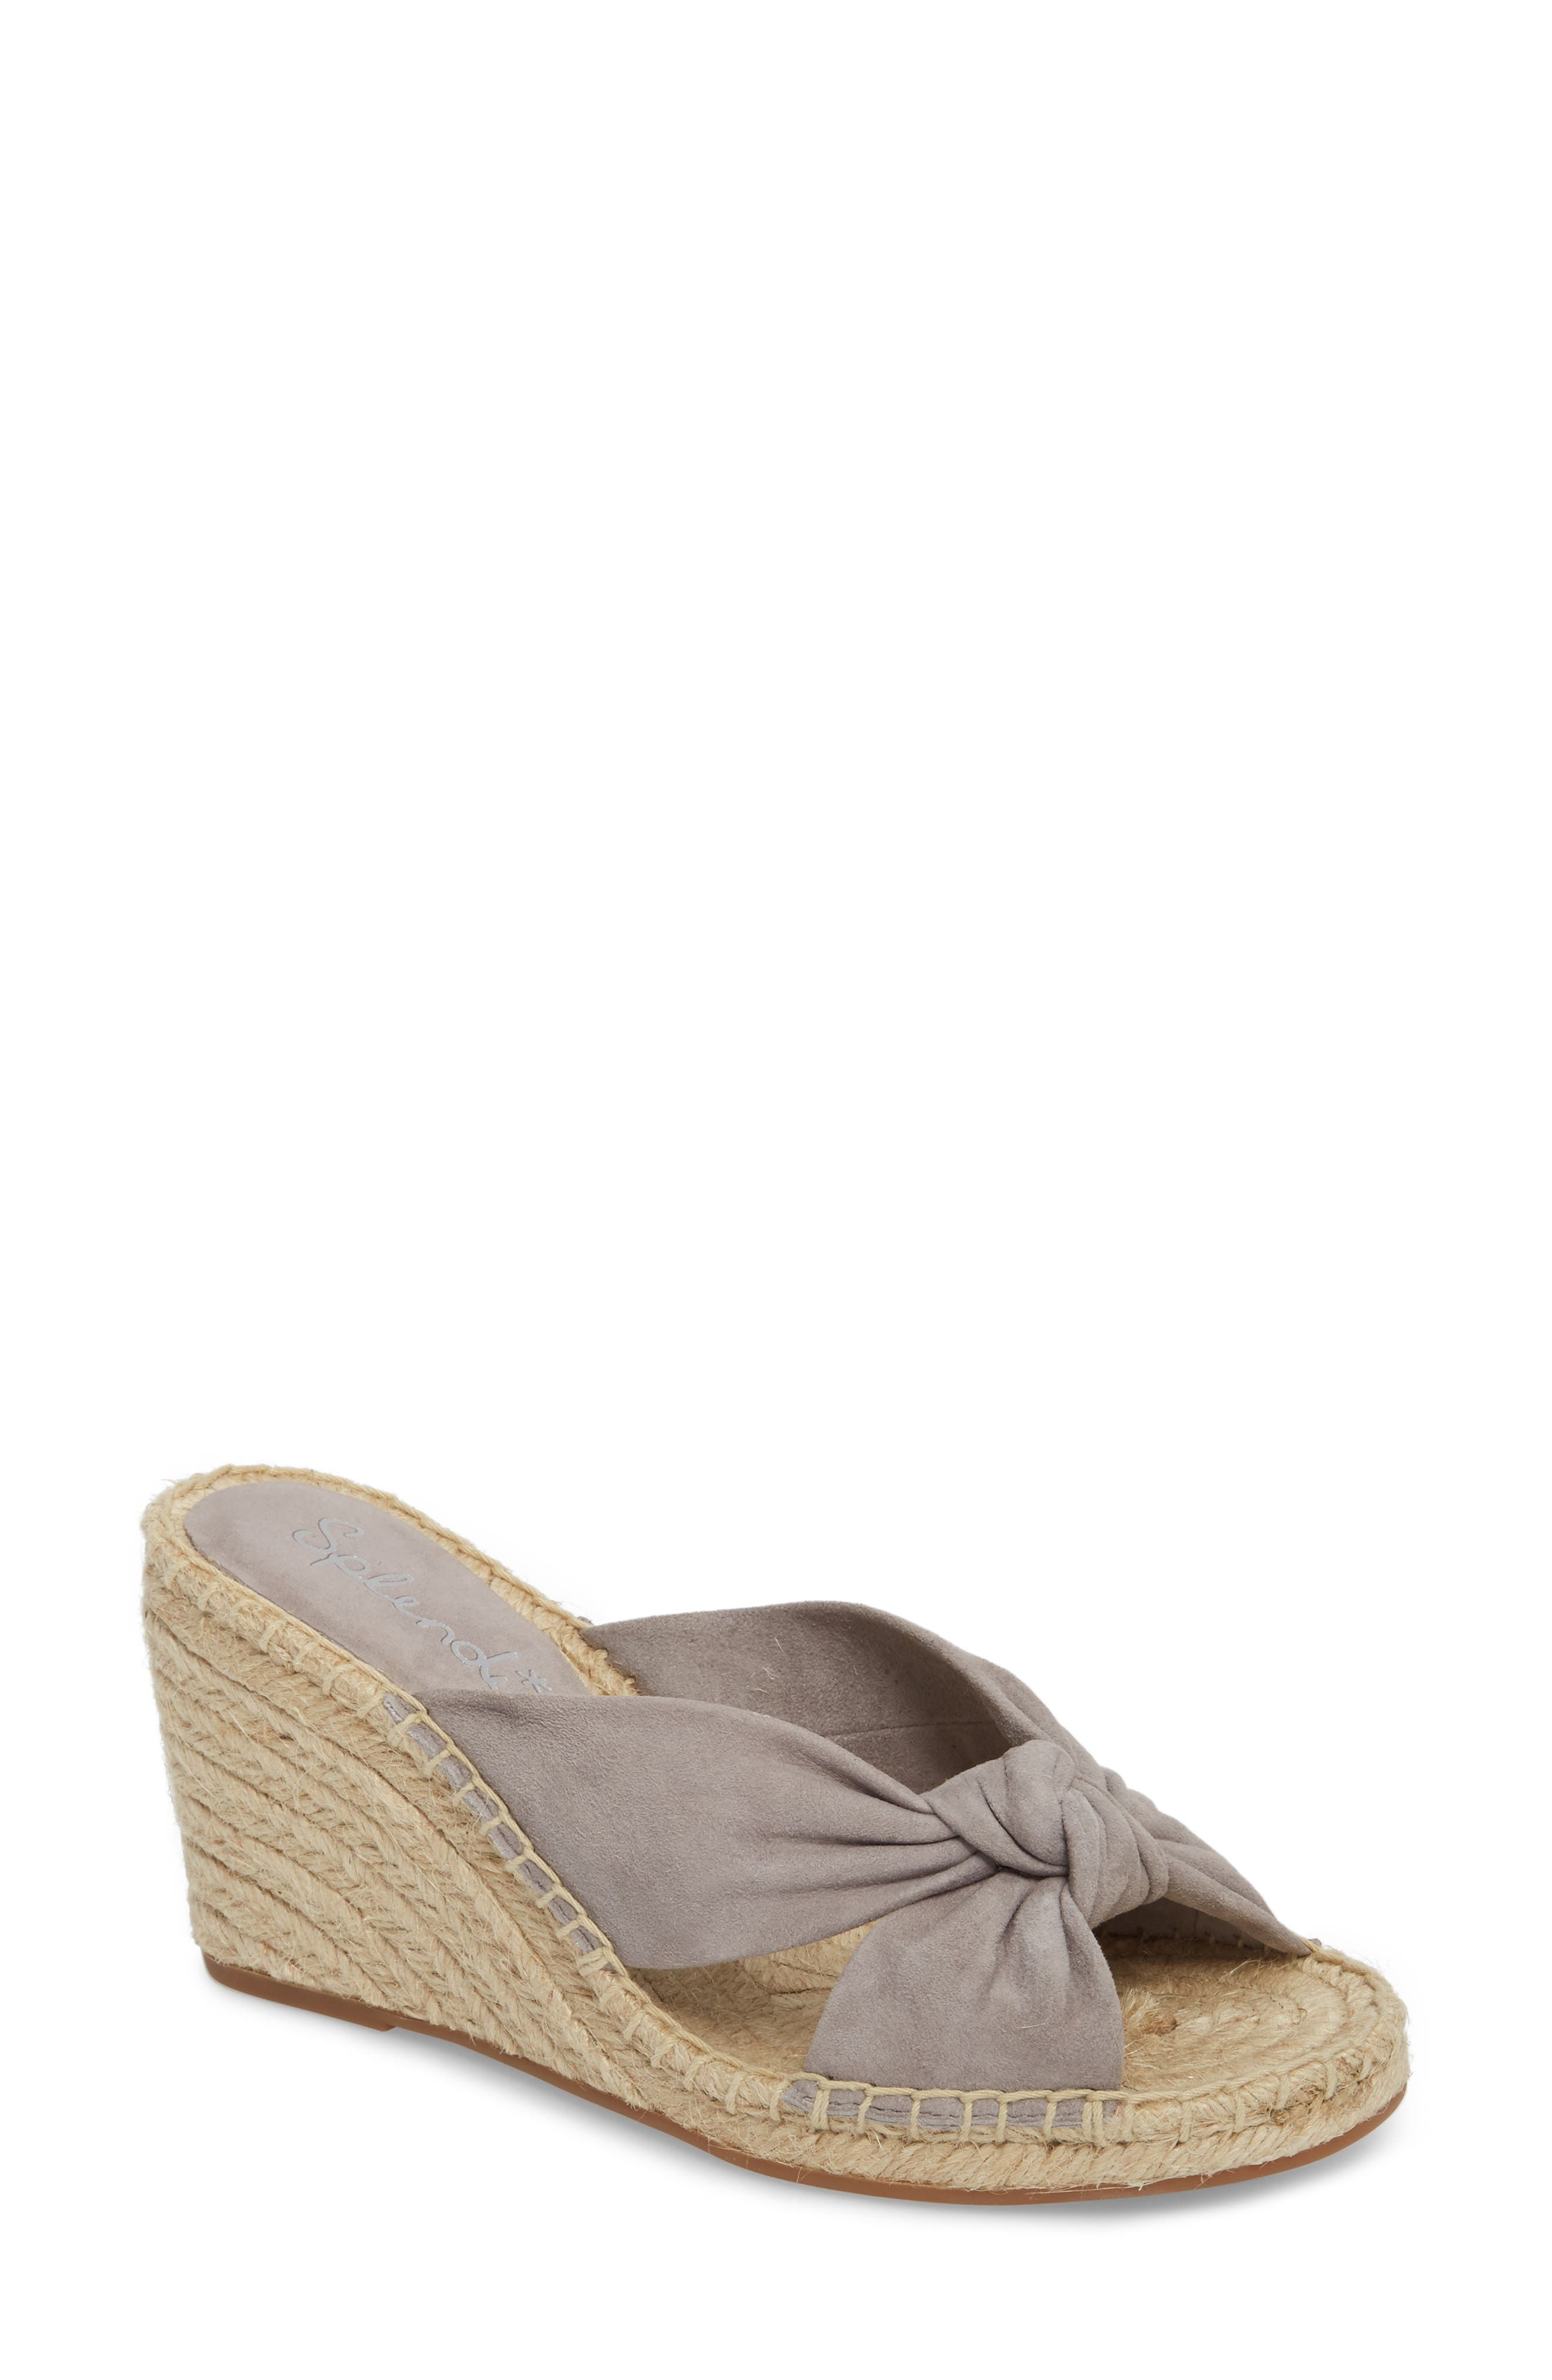 SPLENDID Bautista Knotted Wedge Sandal, Main, color, 053